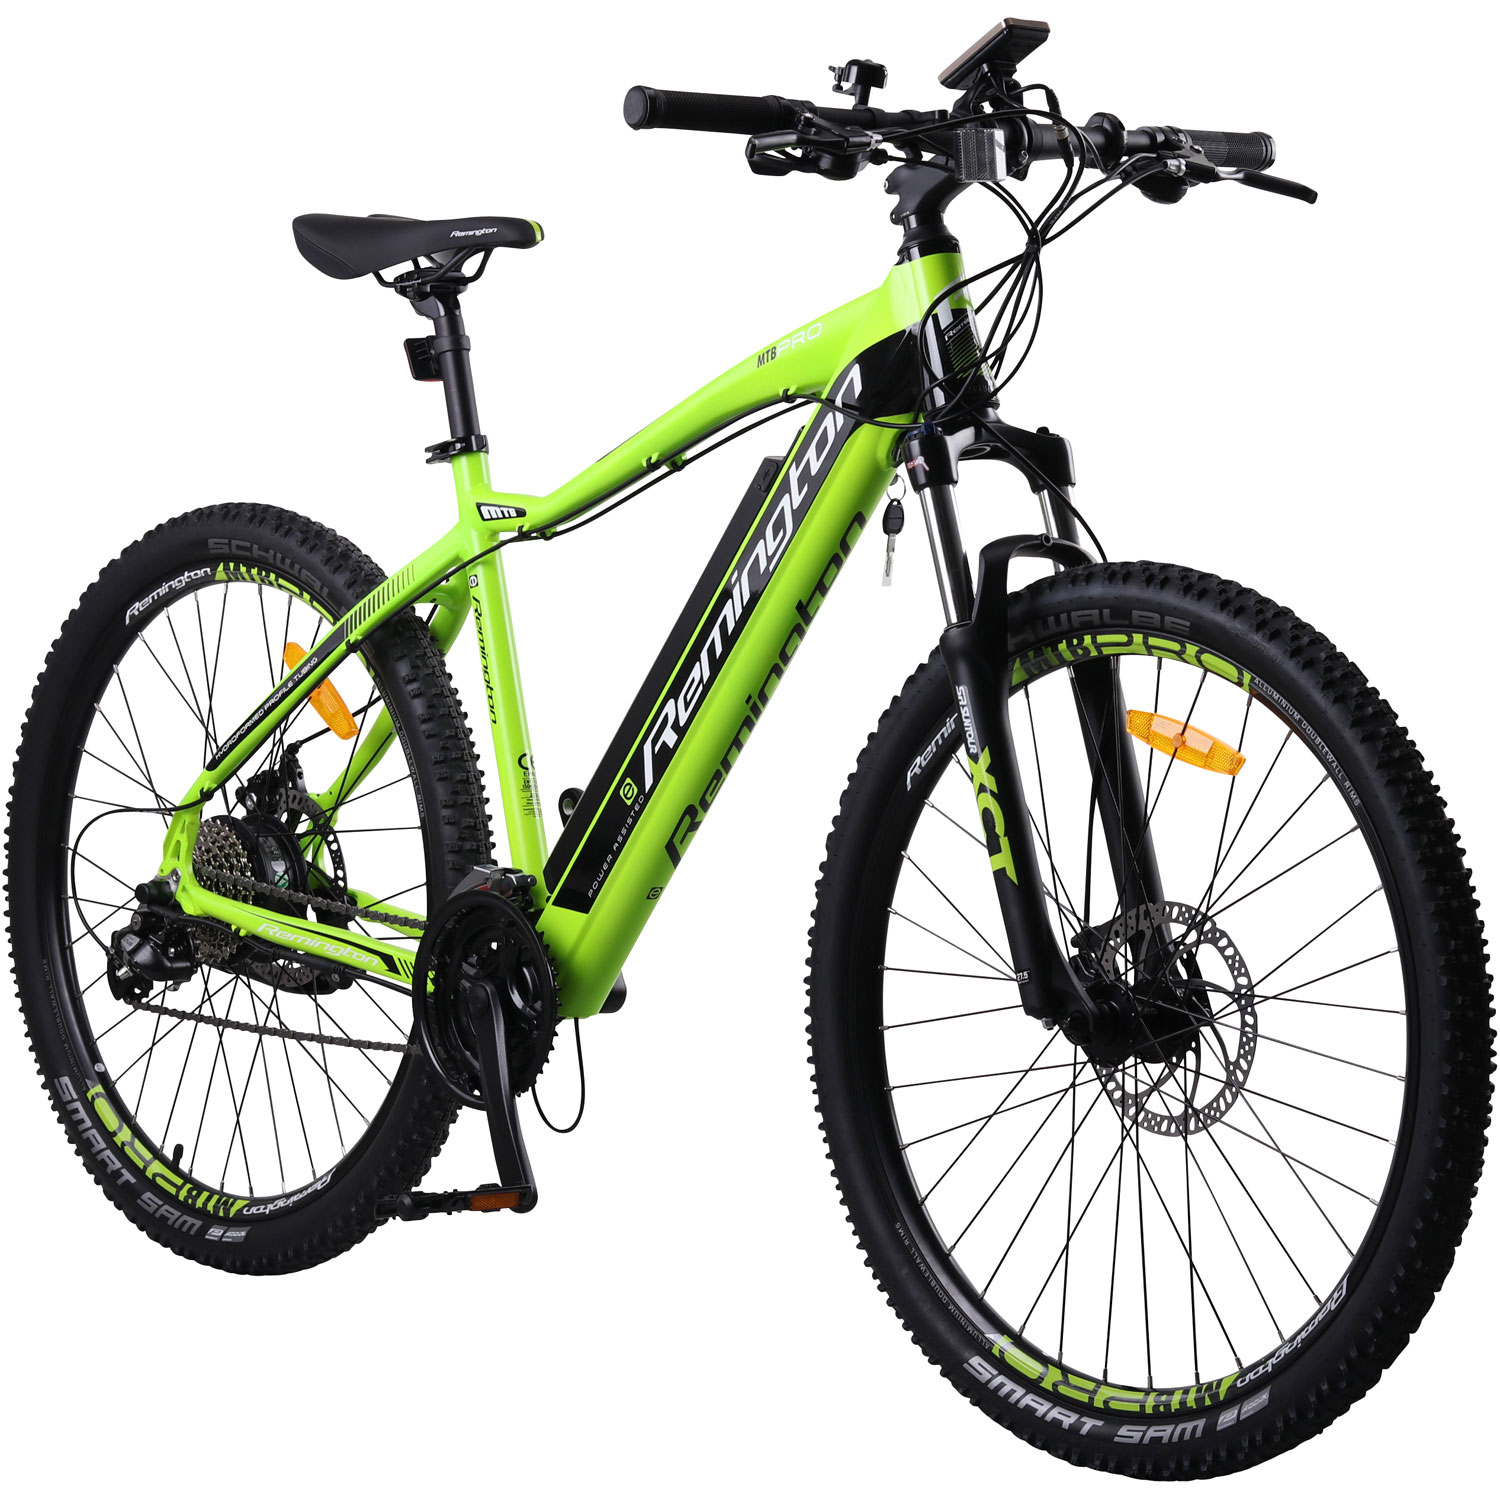 mountain bike 650b 27 5 inches remington pro e bike. Black Bedroom Furniture Sets. Home Design Ideas